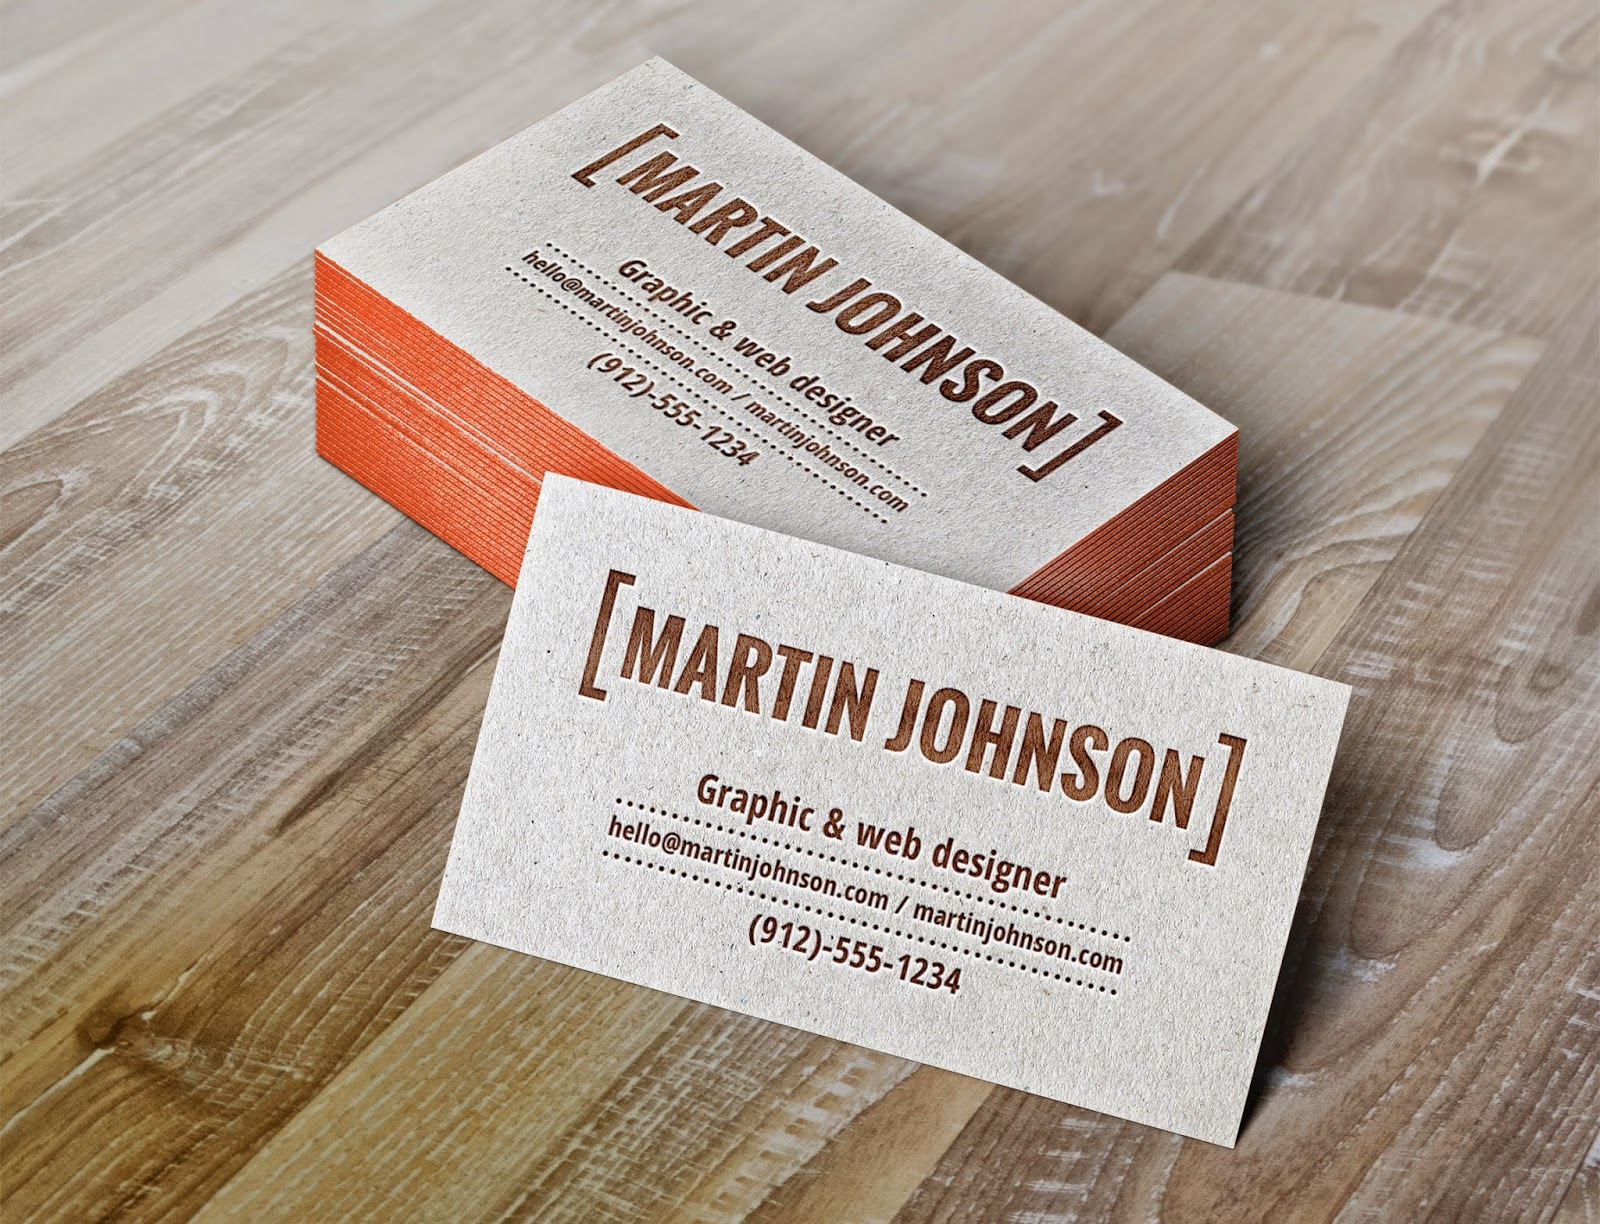 Graphic Degien&News: Business card